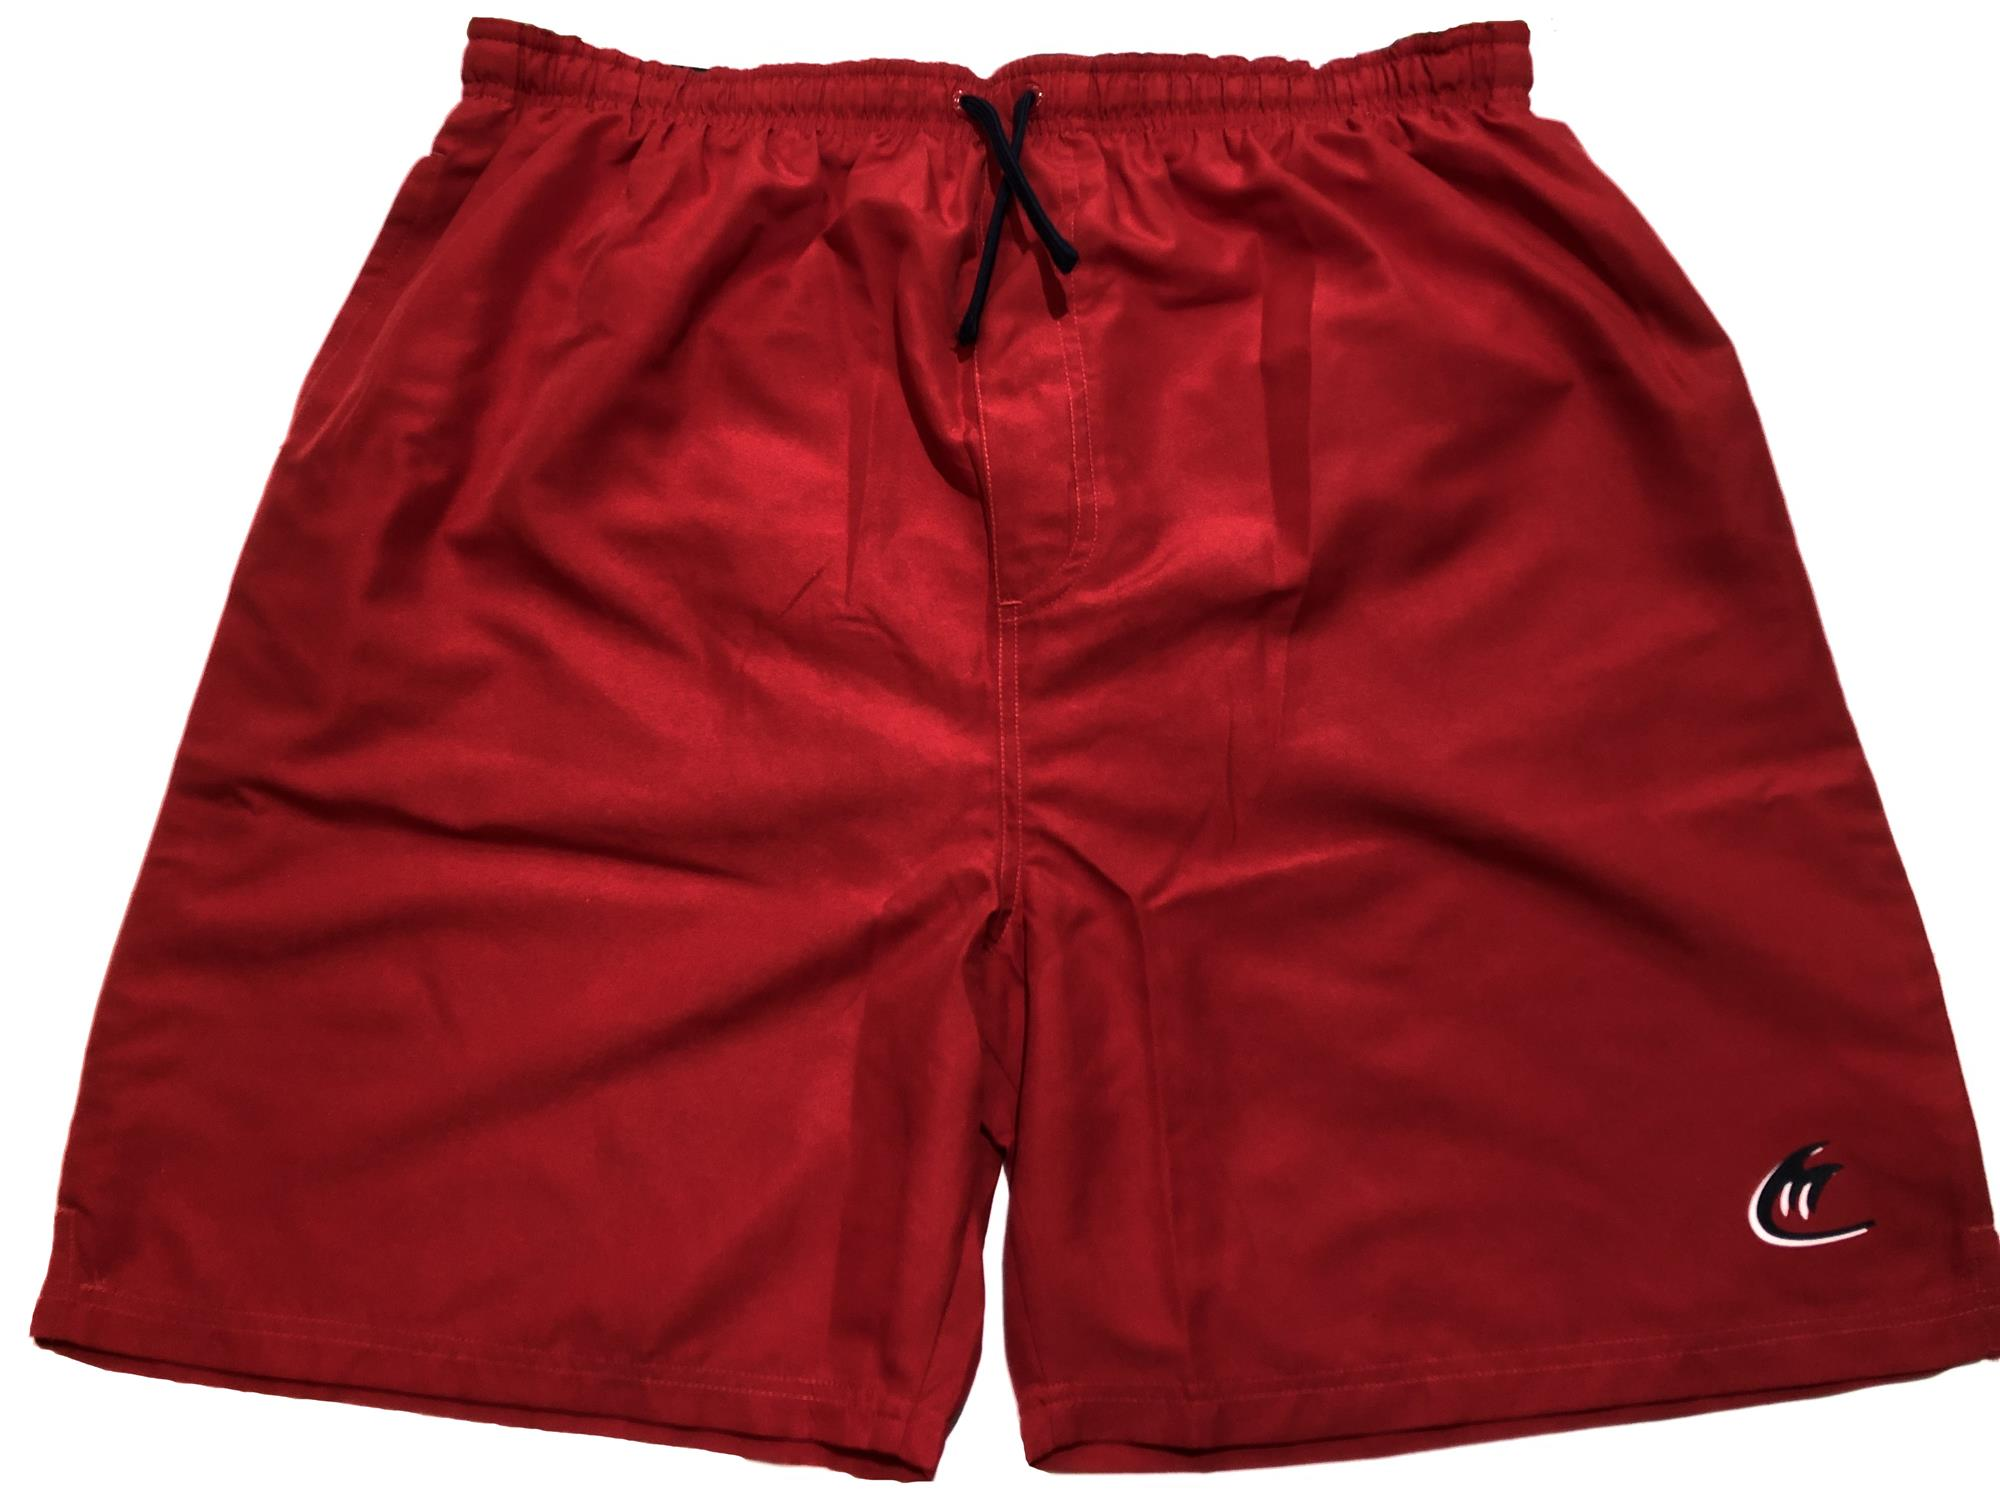 water / swim shorts (red)